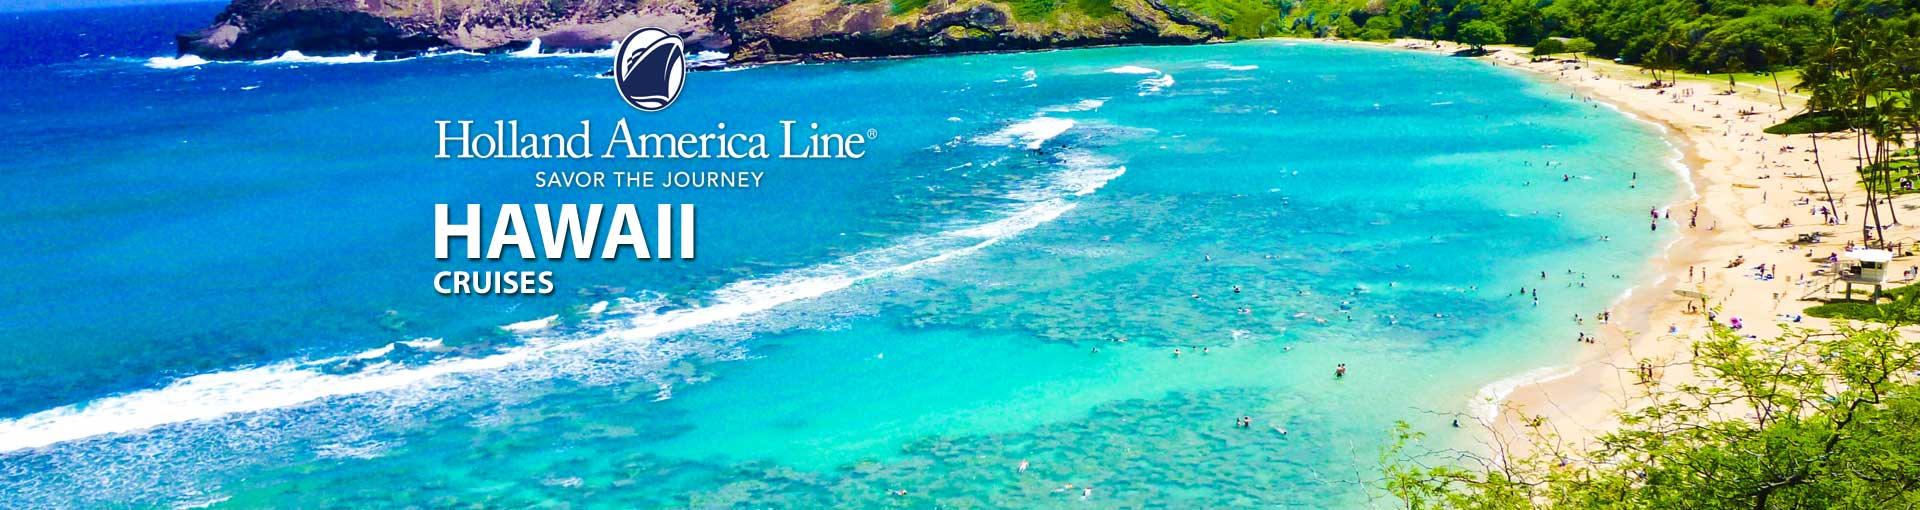 Holland America Hawaii Cruises